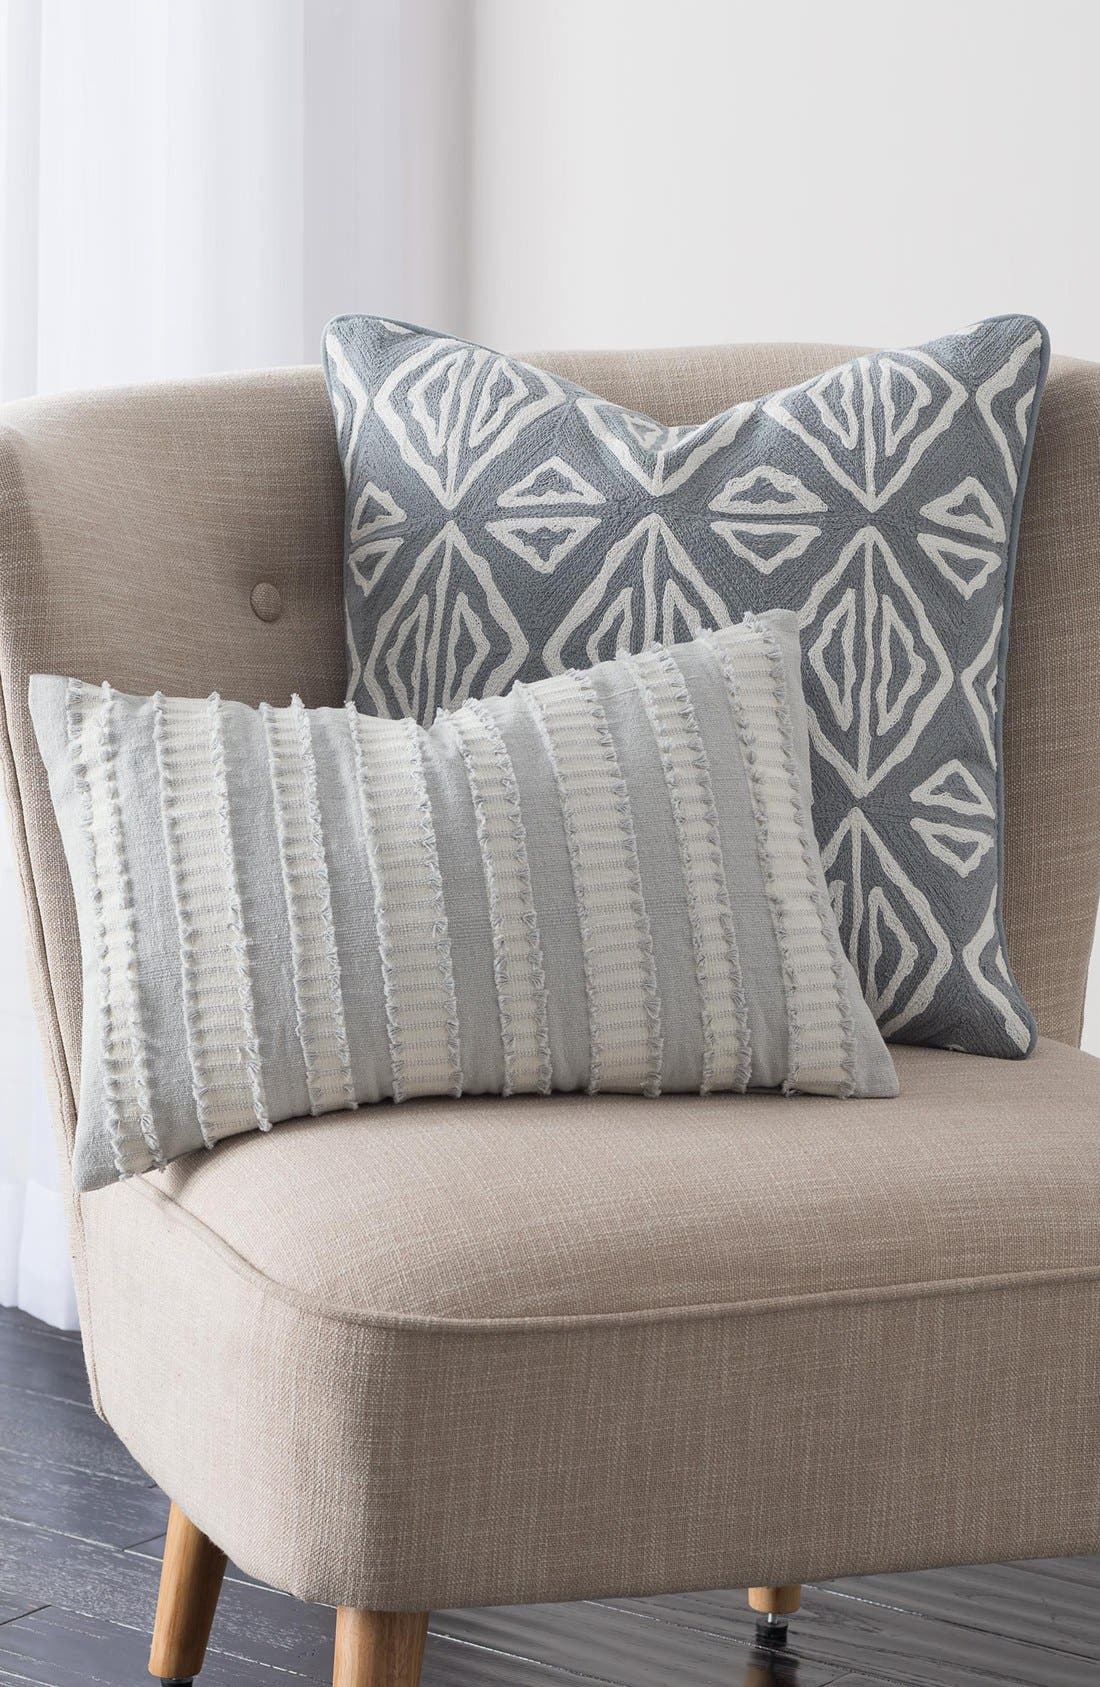 'Moroccan Geo' Crewel Embroidered Pillow,                             Alternate thumbnail 2, color,                             Grey